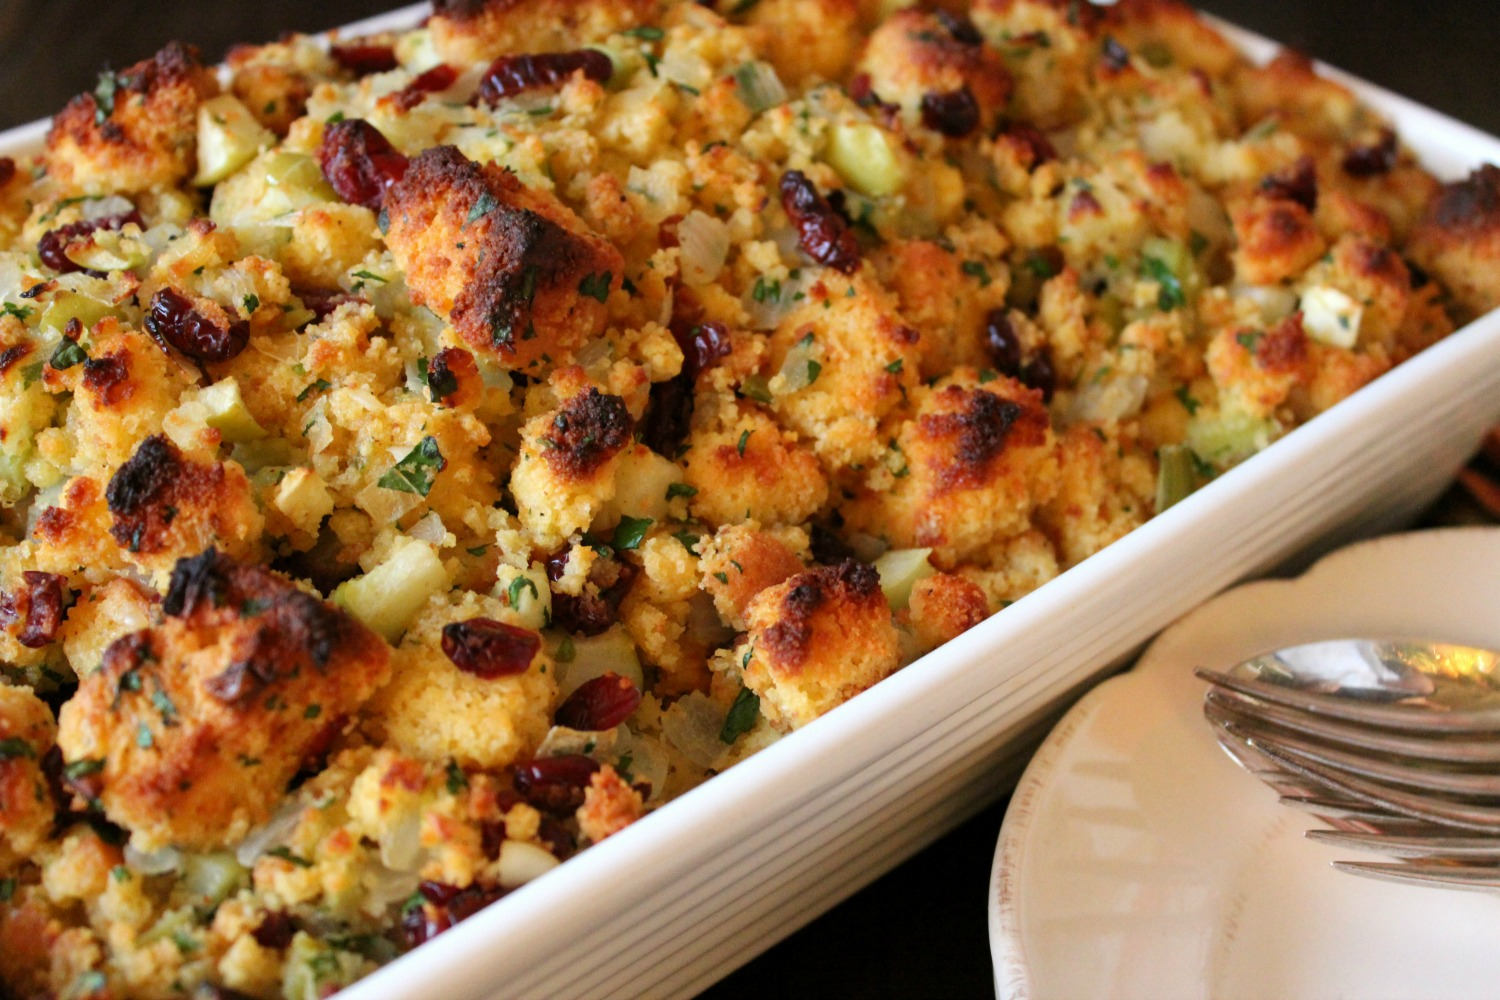 Some call it stuffing, some call it dressing. In any case, it goes with turkey for Thanksgiving.